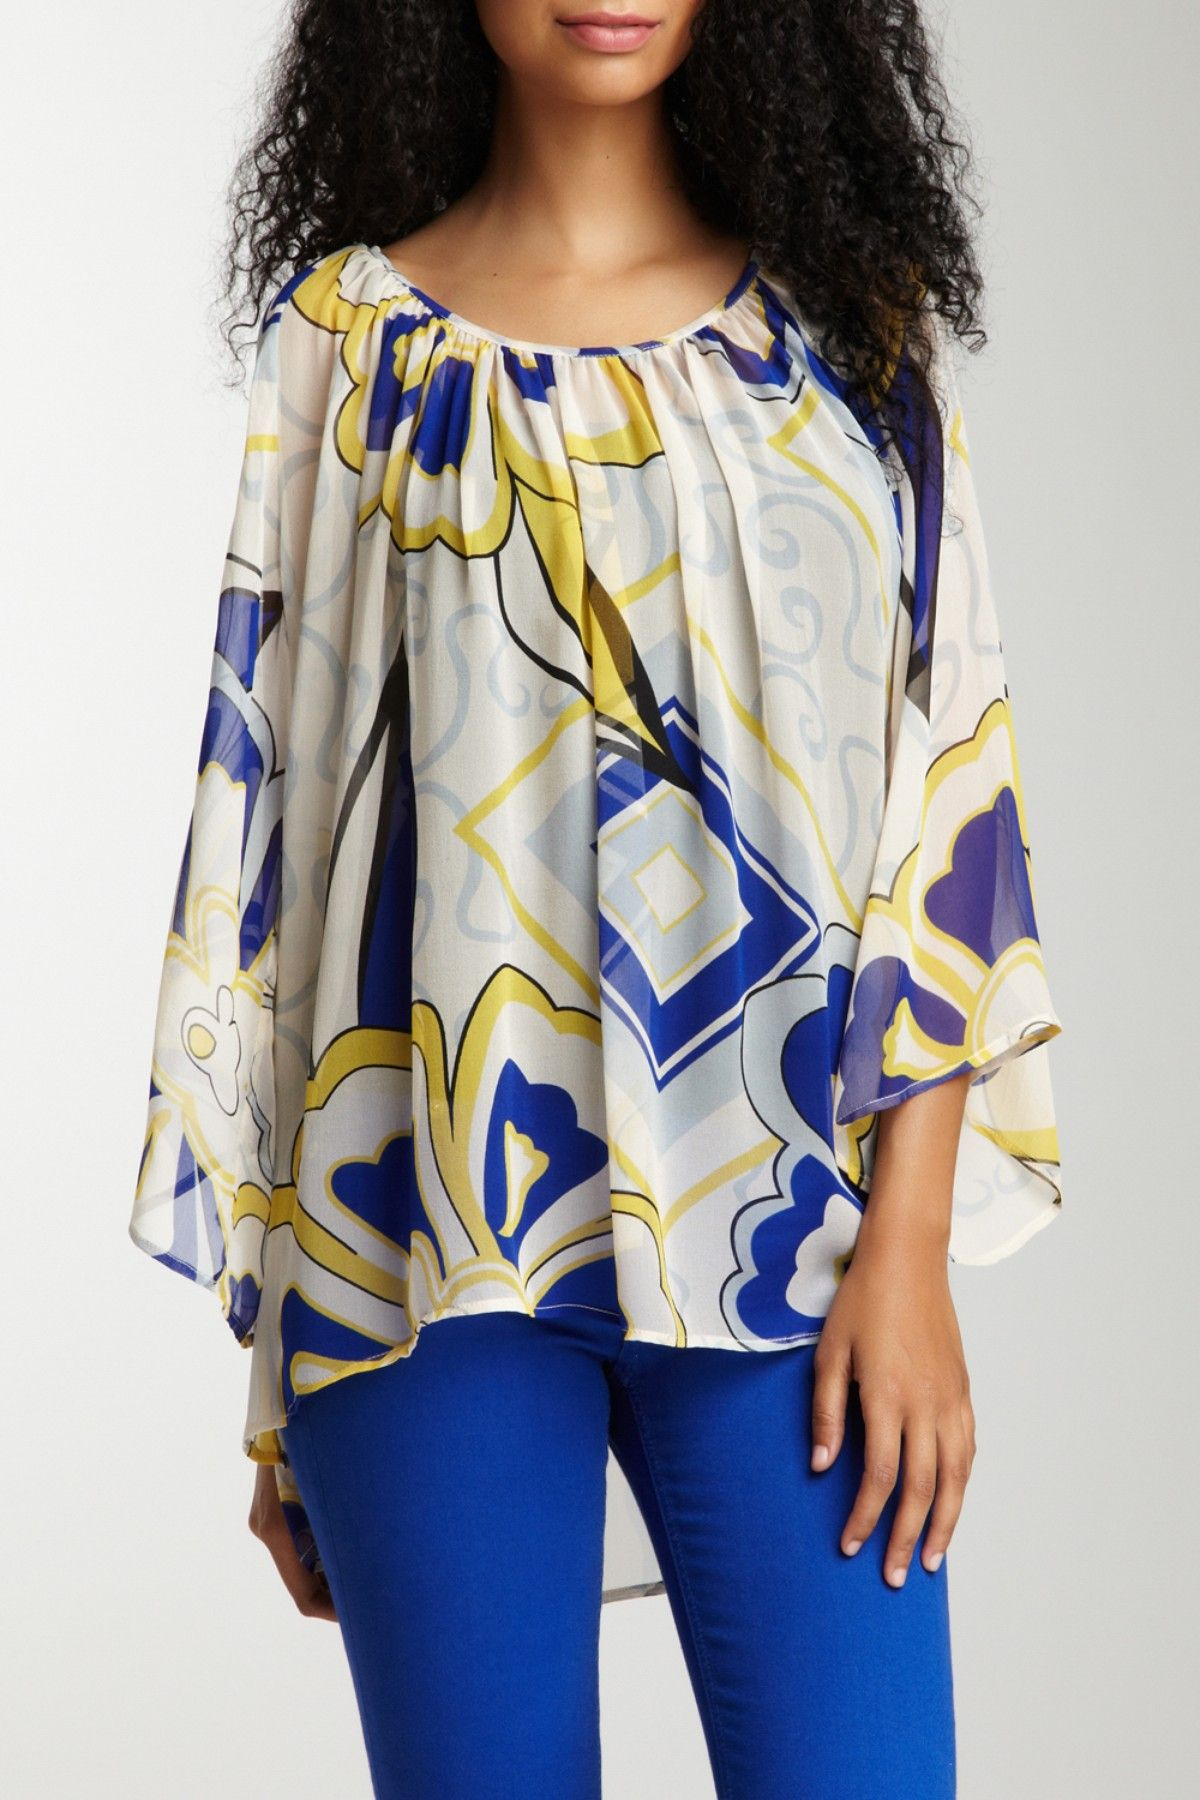 Bell Sleeve Tunic Silk Top by Analili on @HauteLook